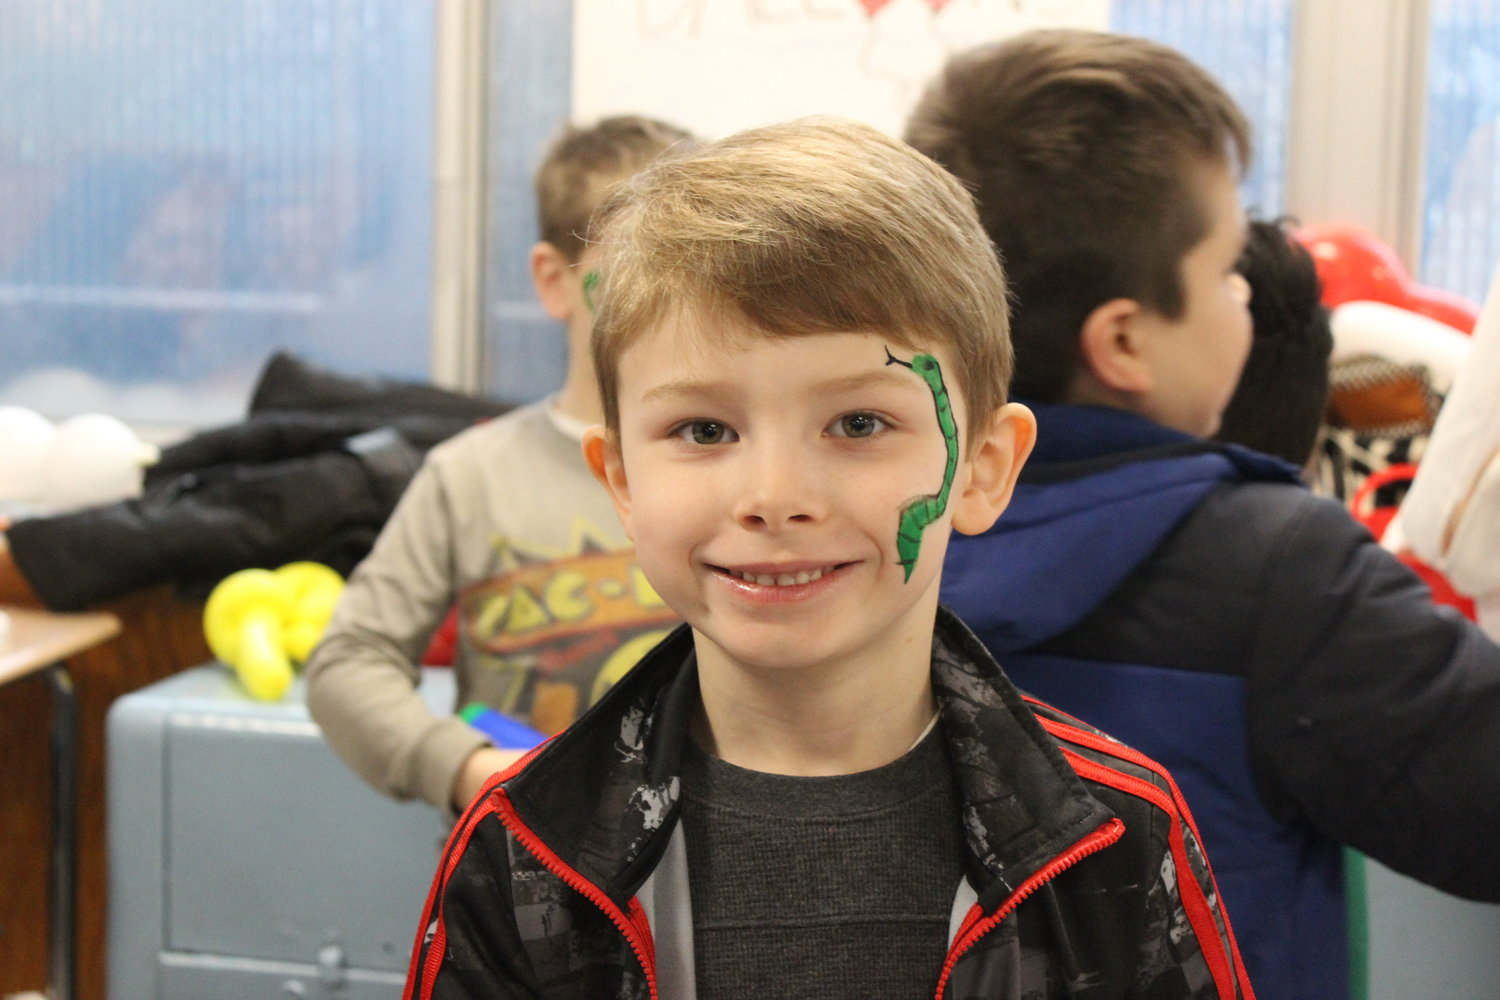 DeMarco Hernandez, 6, got his face painted and played with balloons at the event's kid's section.